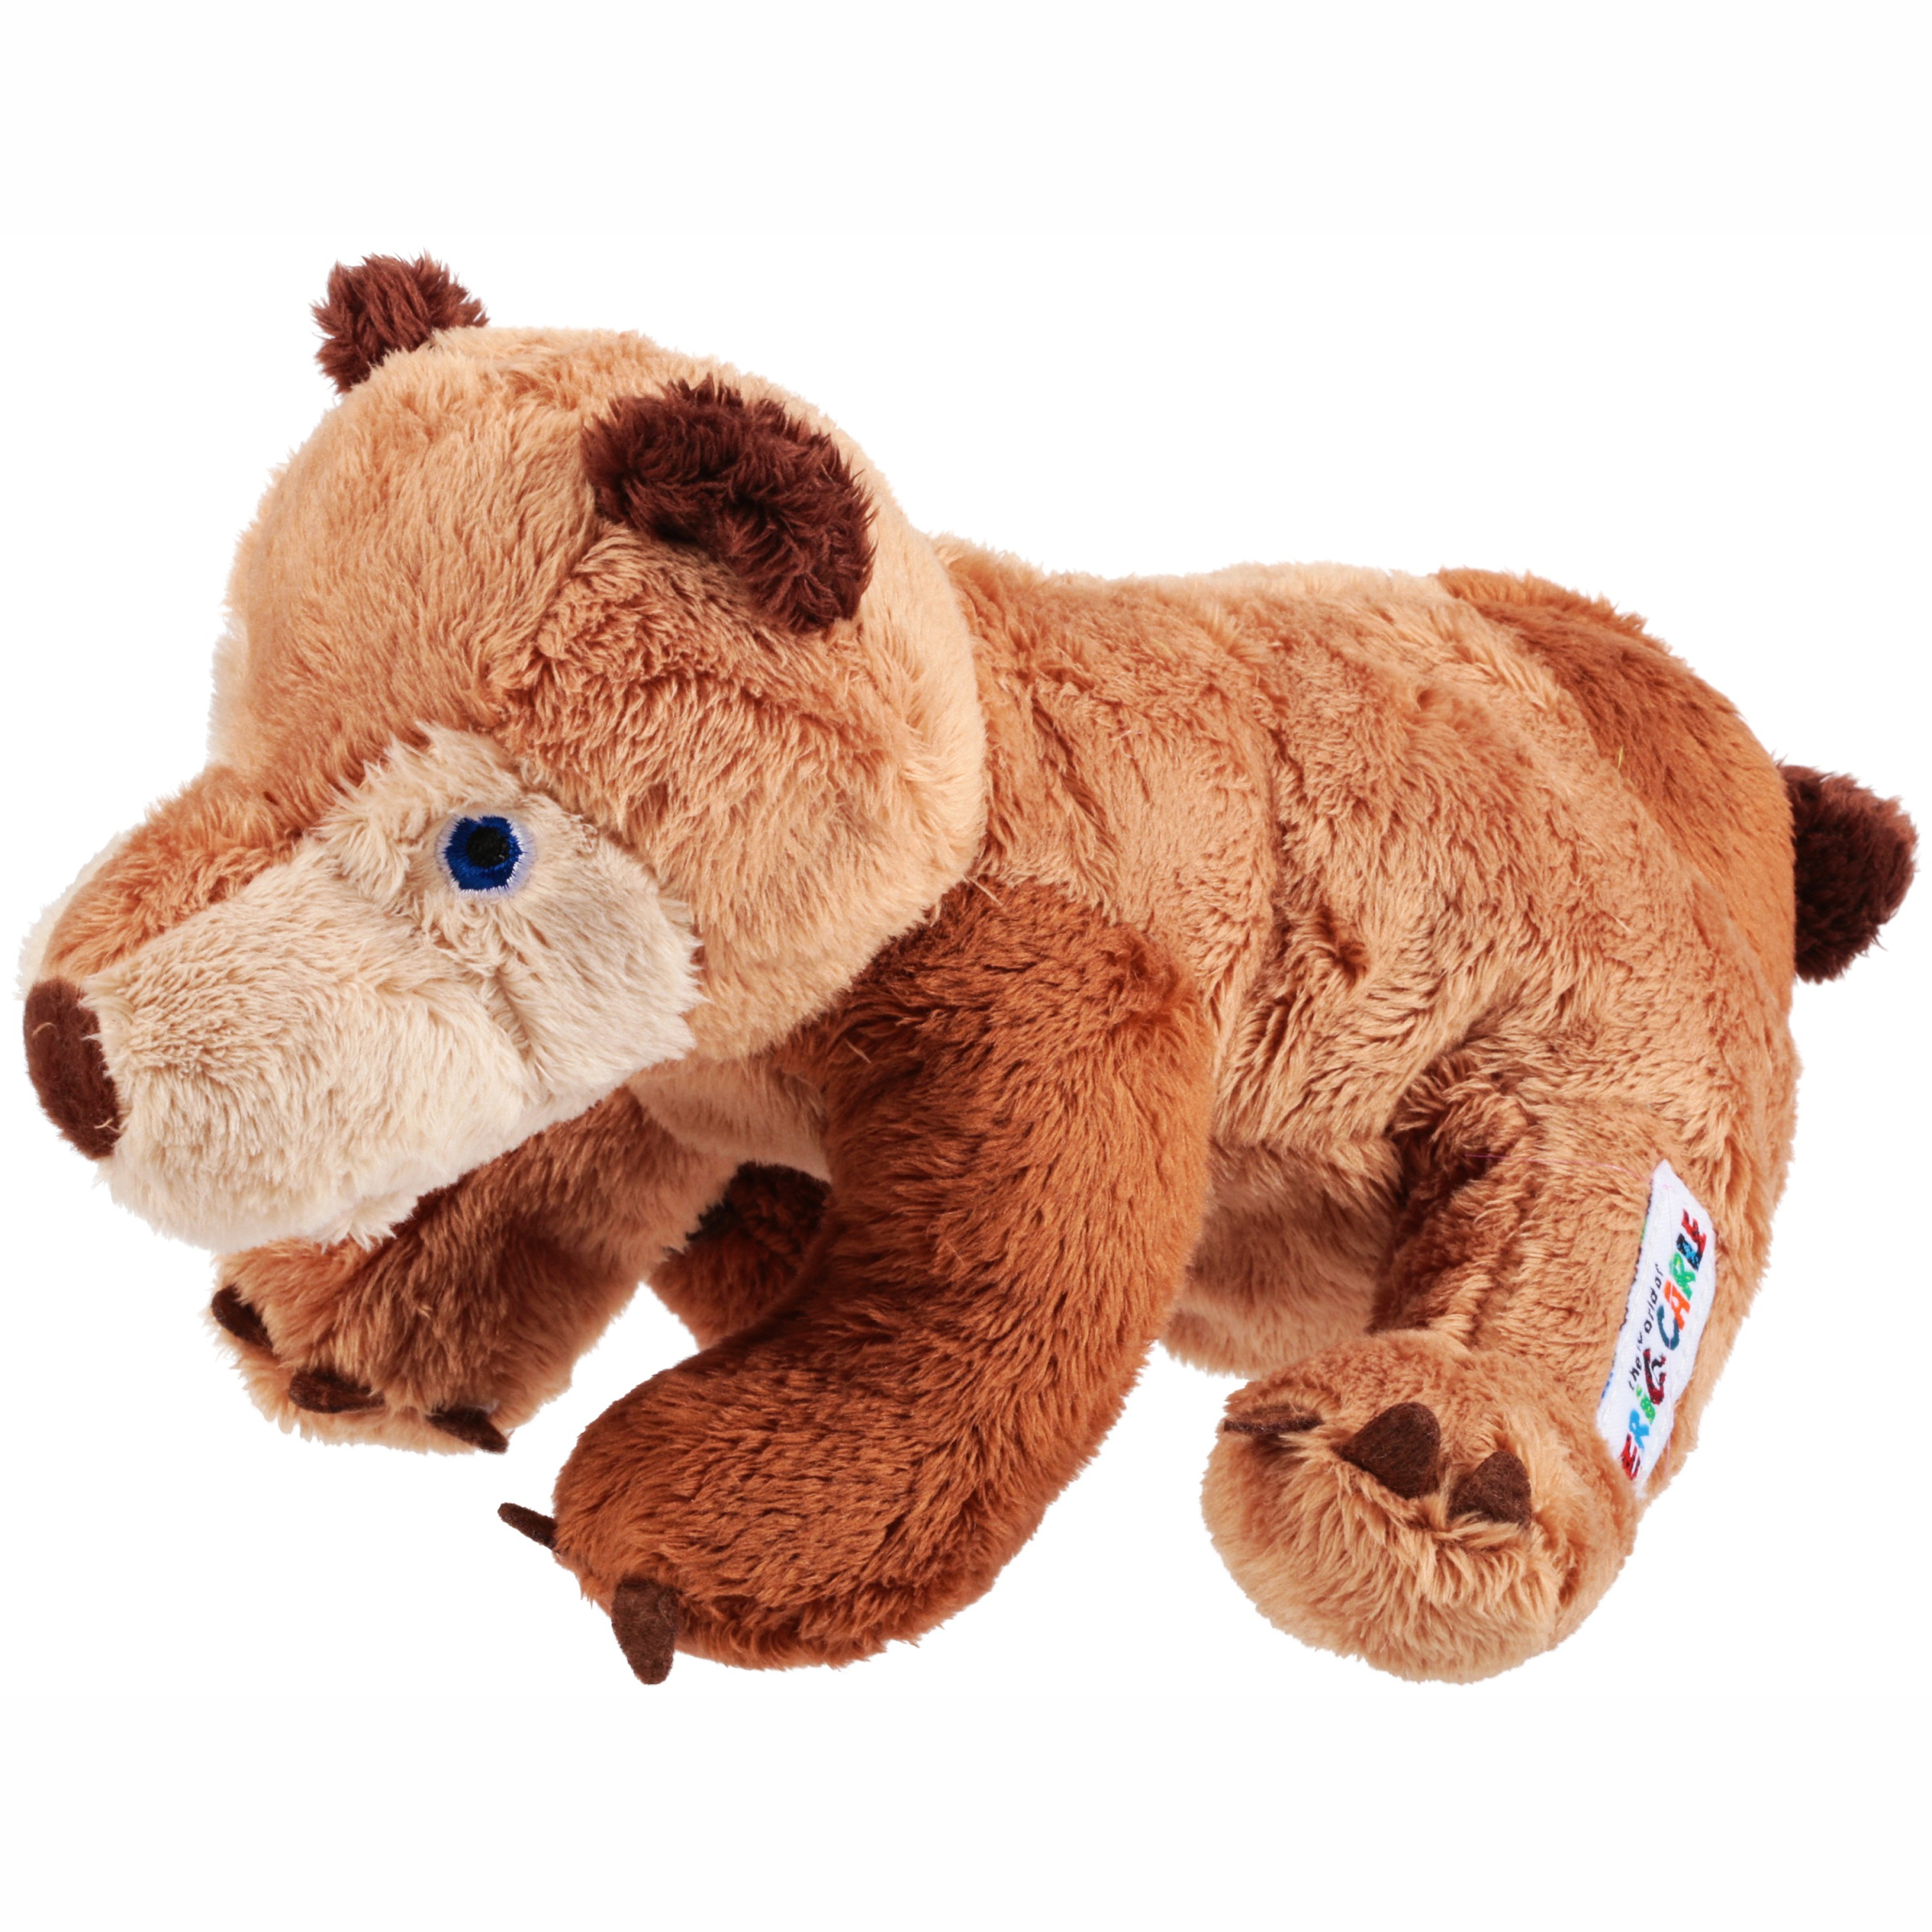 The World of Eric Carle™ Kids Preferred™ Bear Plush Toy